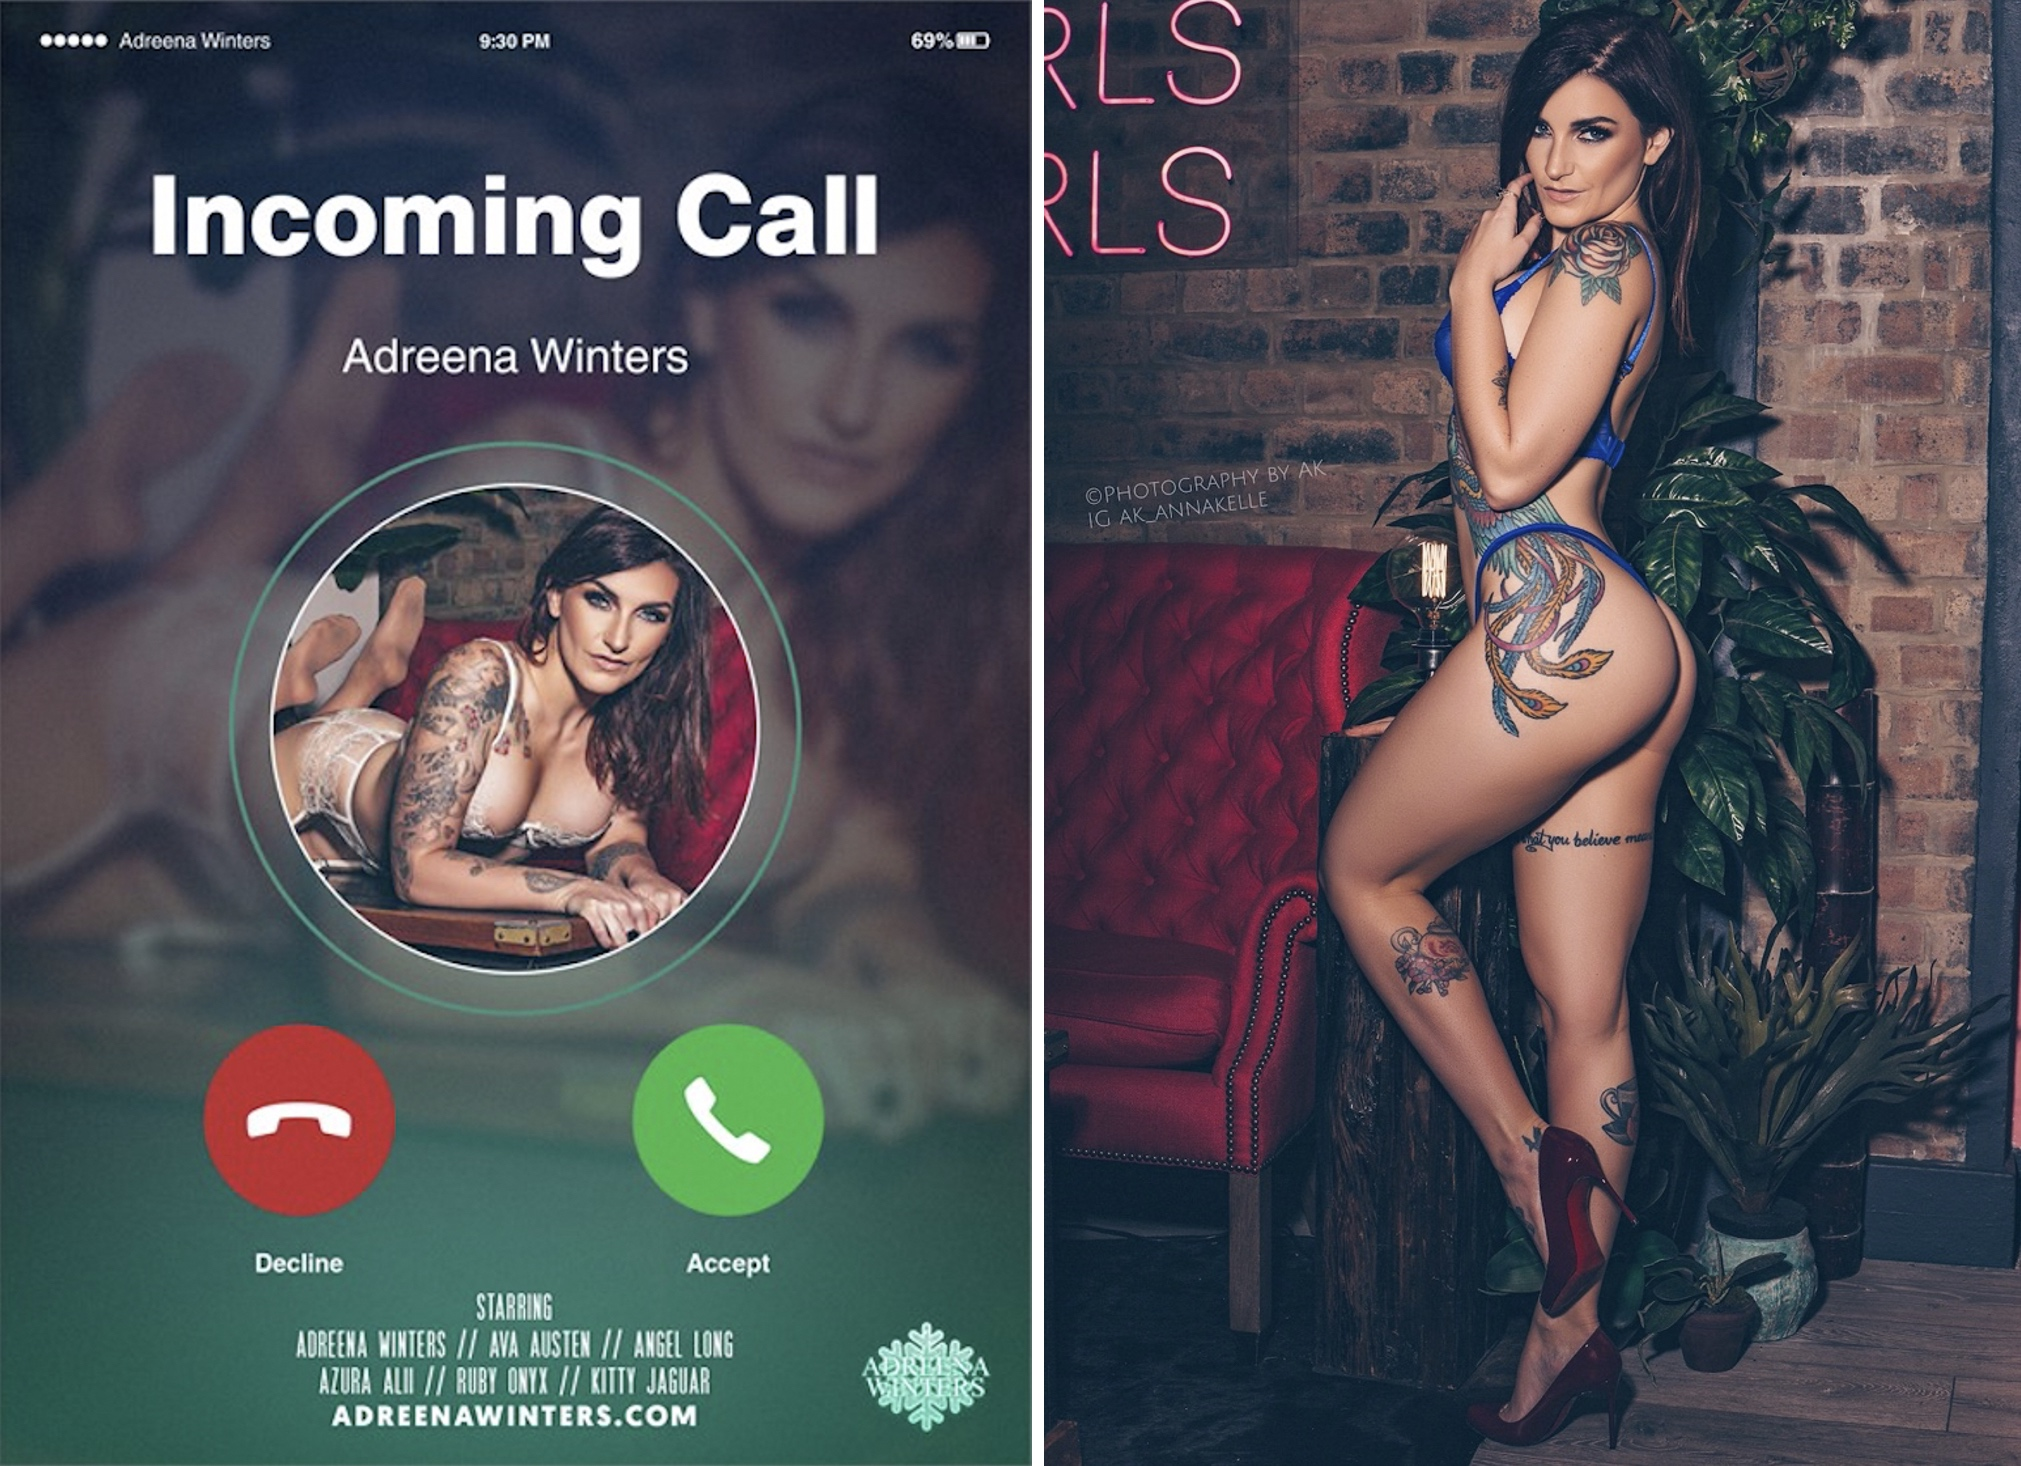 You Have an Incoming Call—It's Adreena Winters & Her Girlfriends